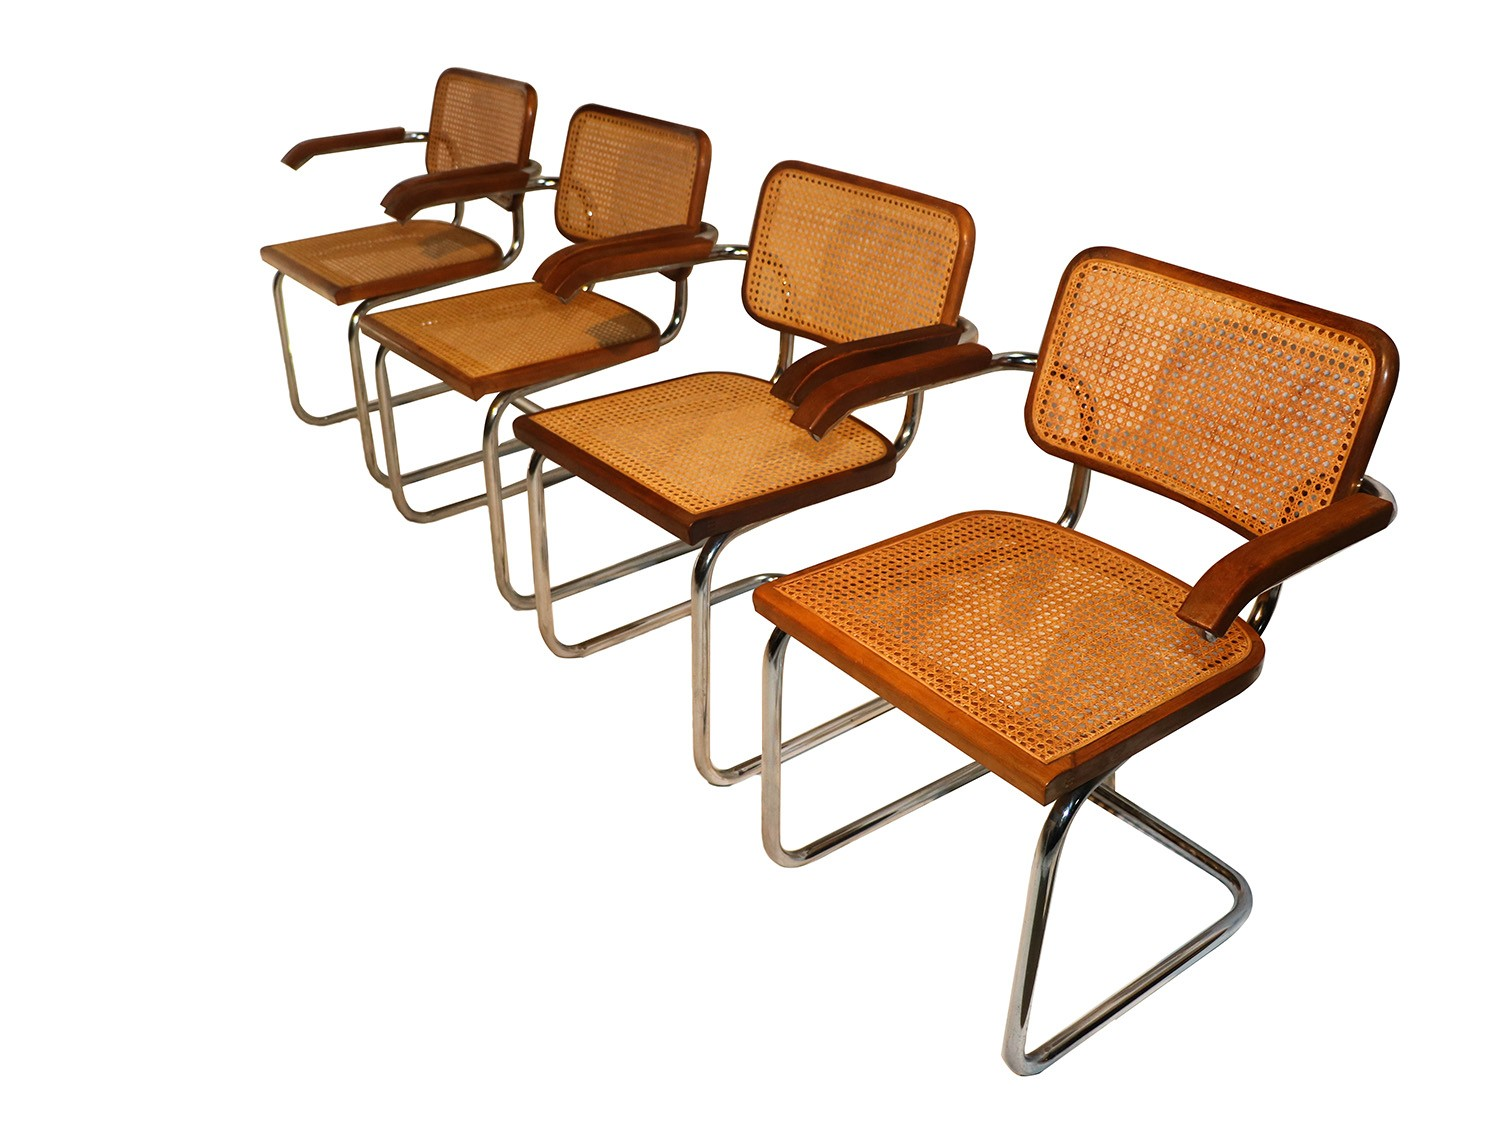 marcel breuer cesca chair with armrests covers for small dining chairs style cane arm